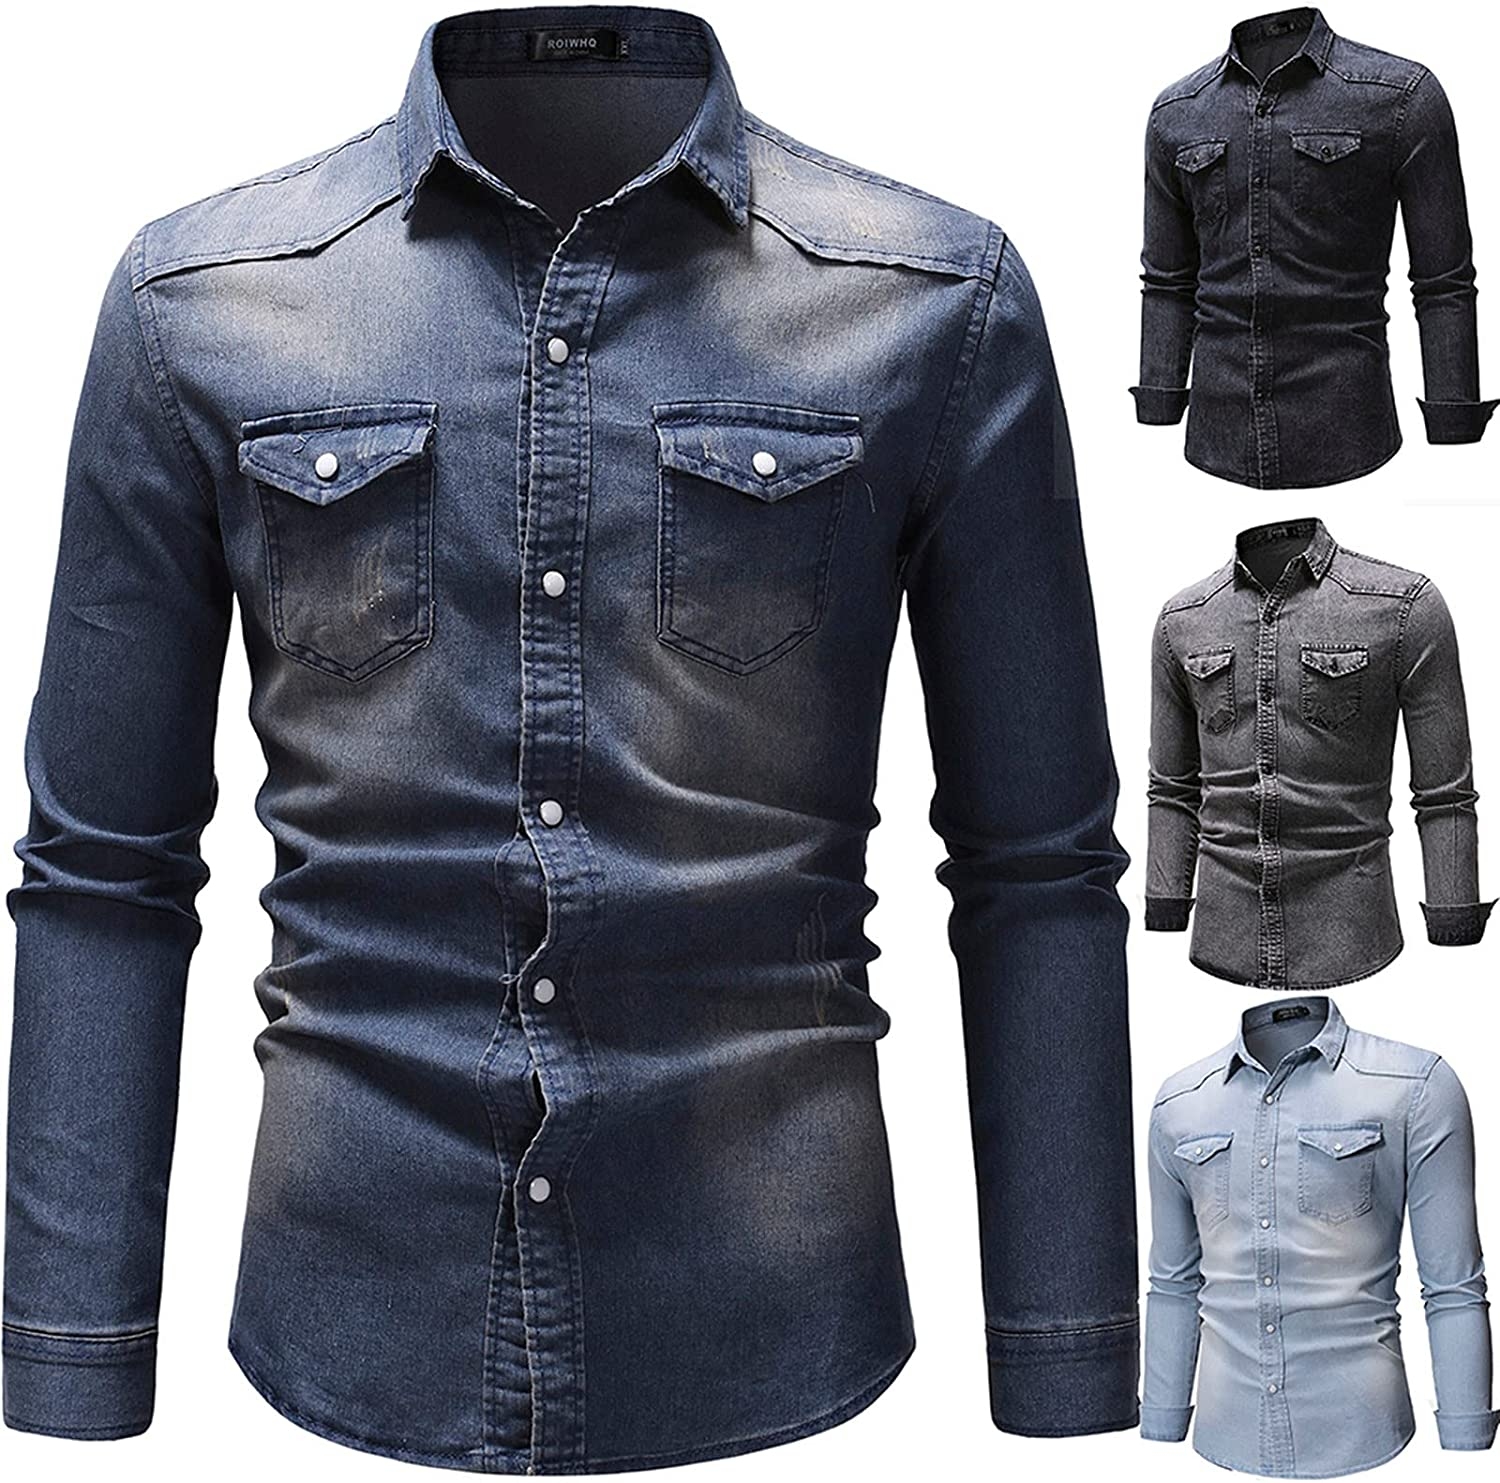 xoxing Long Sleeve for Men Casual Plus Size Loose Camouflage Lapel Retro Buttons Pocket Denim Top Blouse Pullover